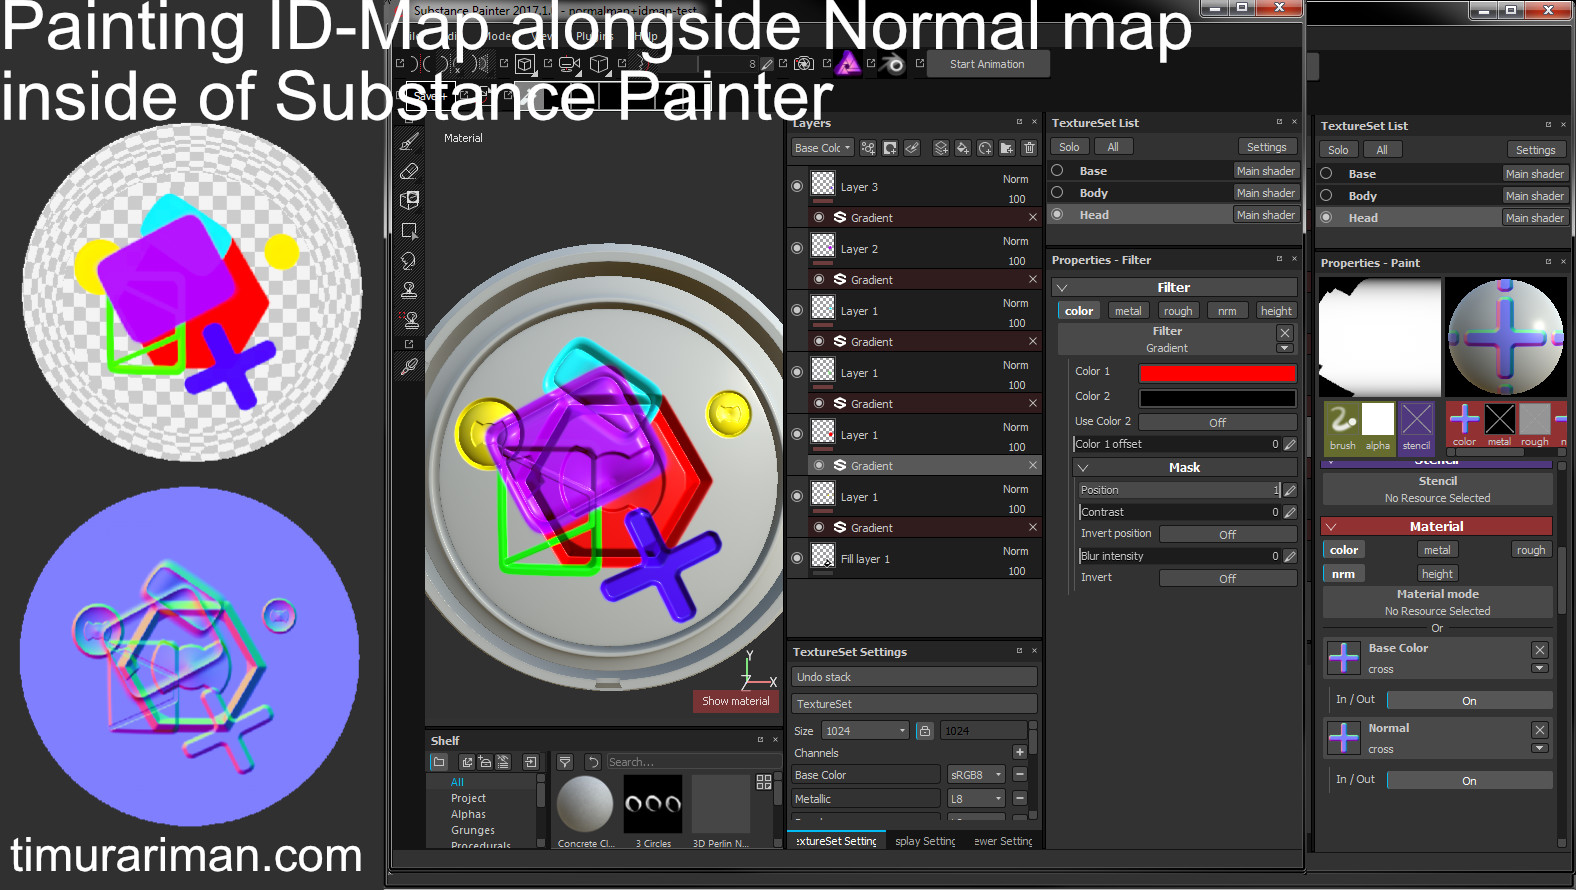 ArtStation - Painting/Stamping ID-Map alongside Normal maps with